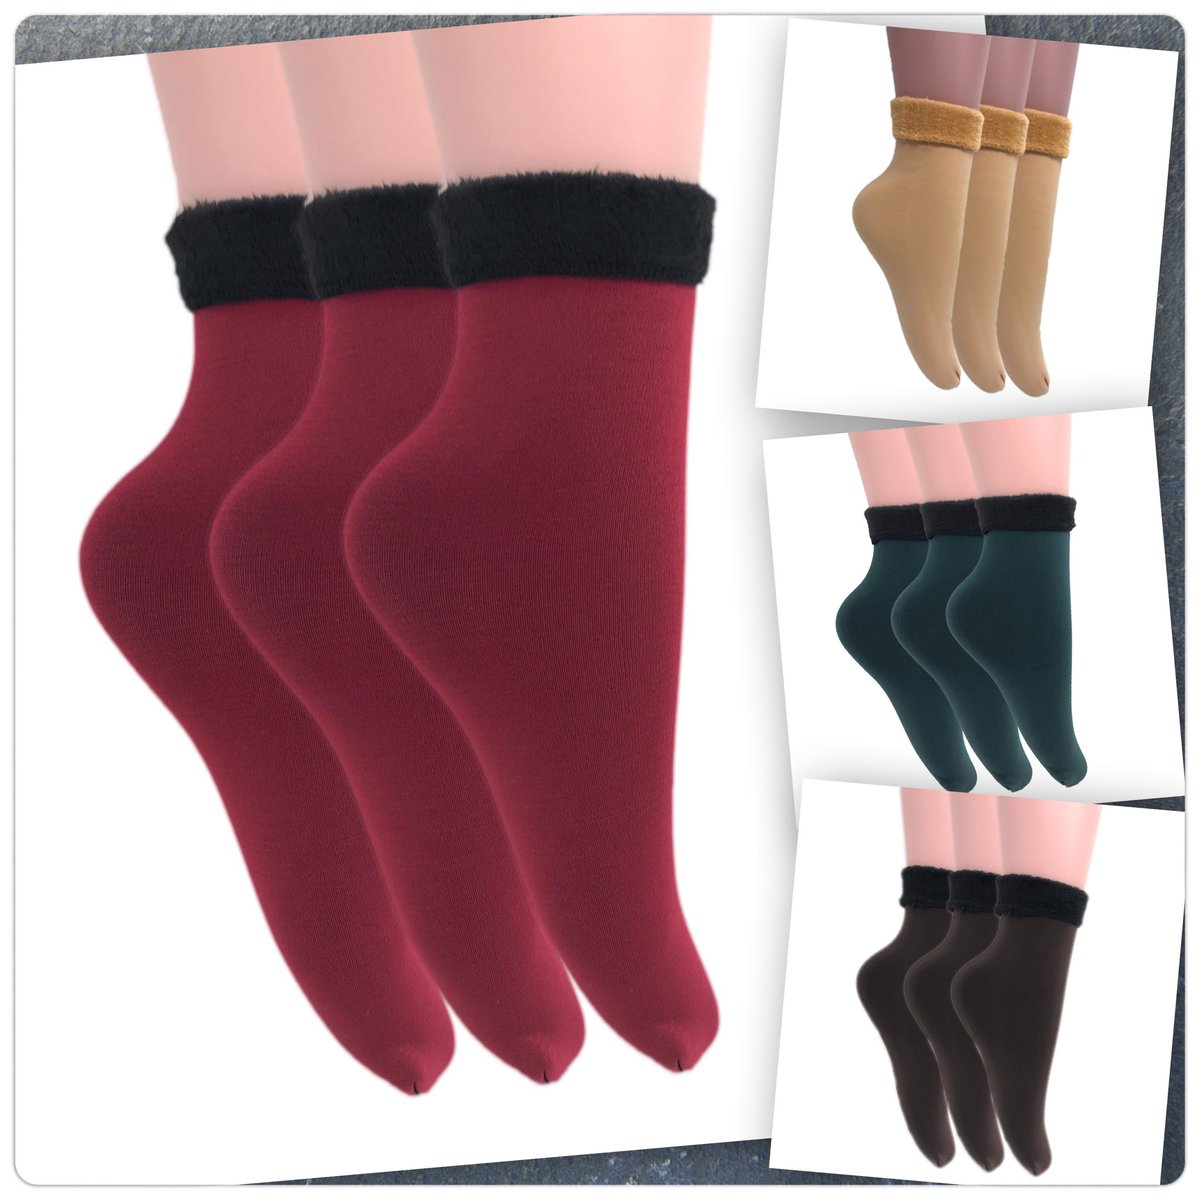 Going fast! Our soft, fuzzy velvet socks make a perfect gift this #holidayseason for your loved ones and even yourself!   More colors&styles available!  For more information please visit .  #fuzzysocks #giftideas #fashion #womensfashion #Christmas